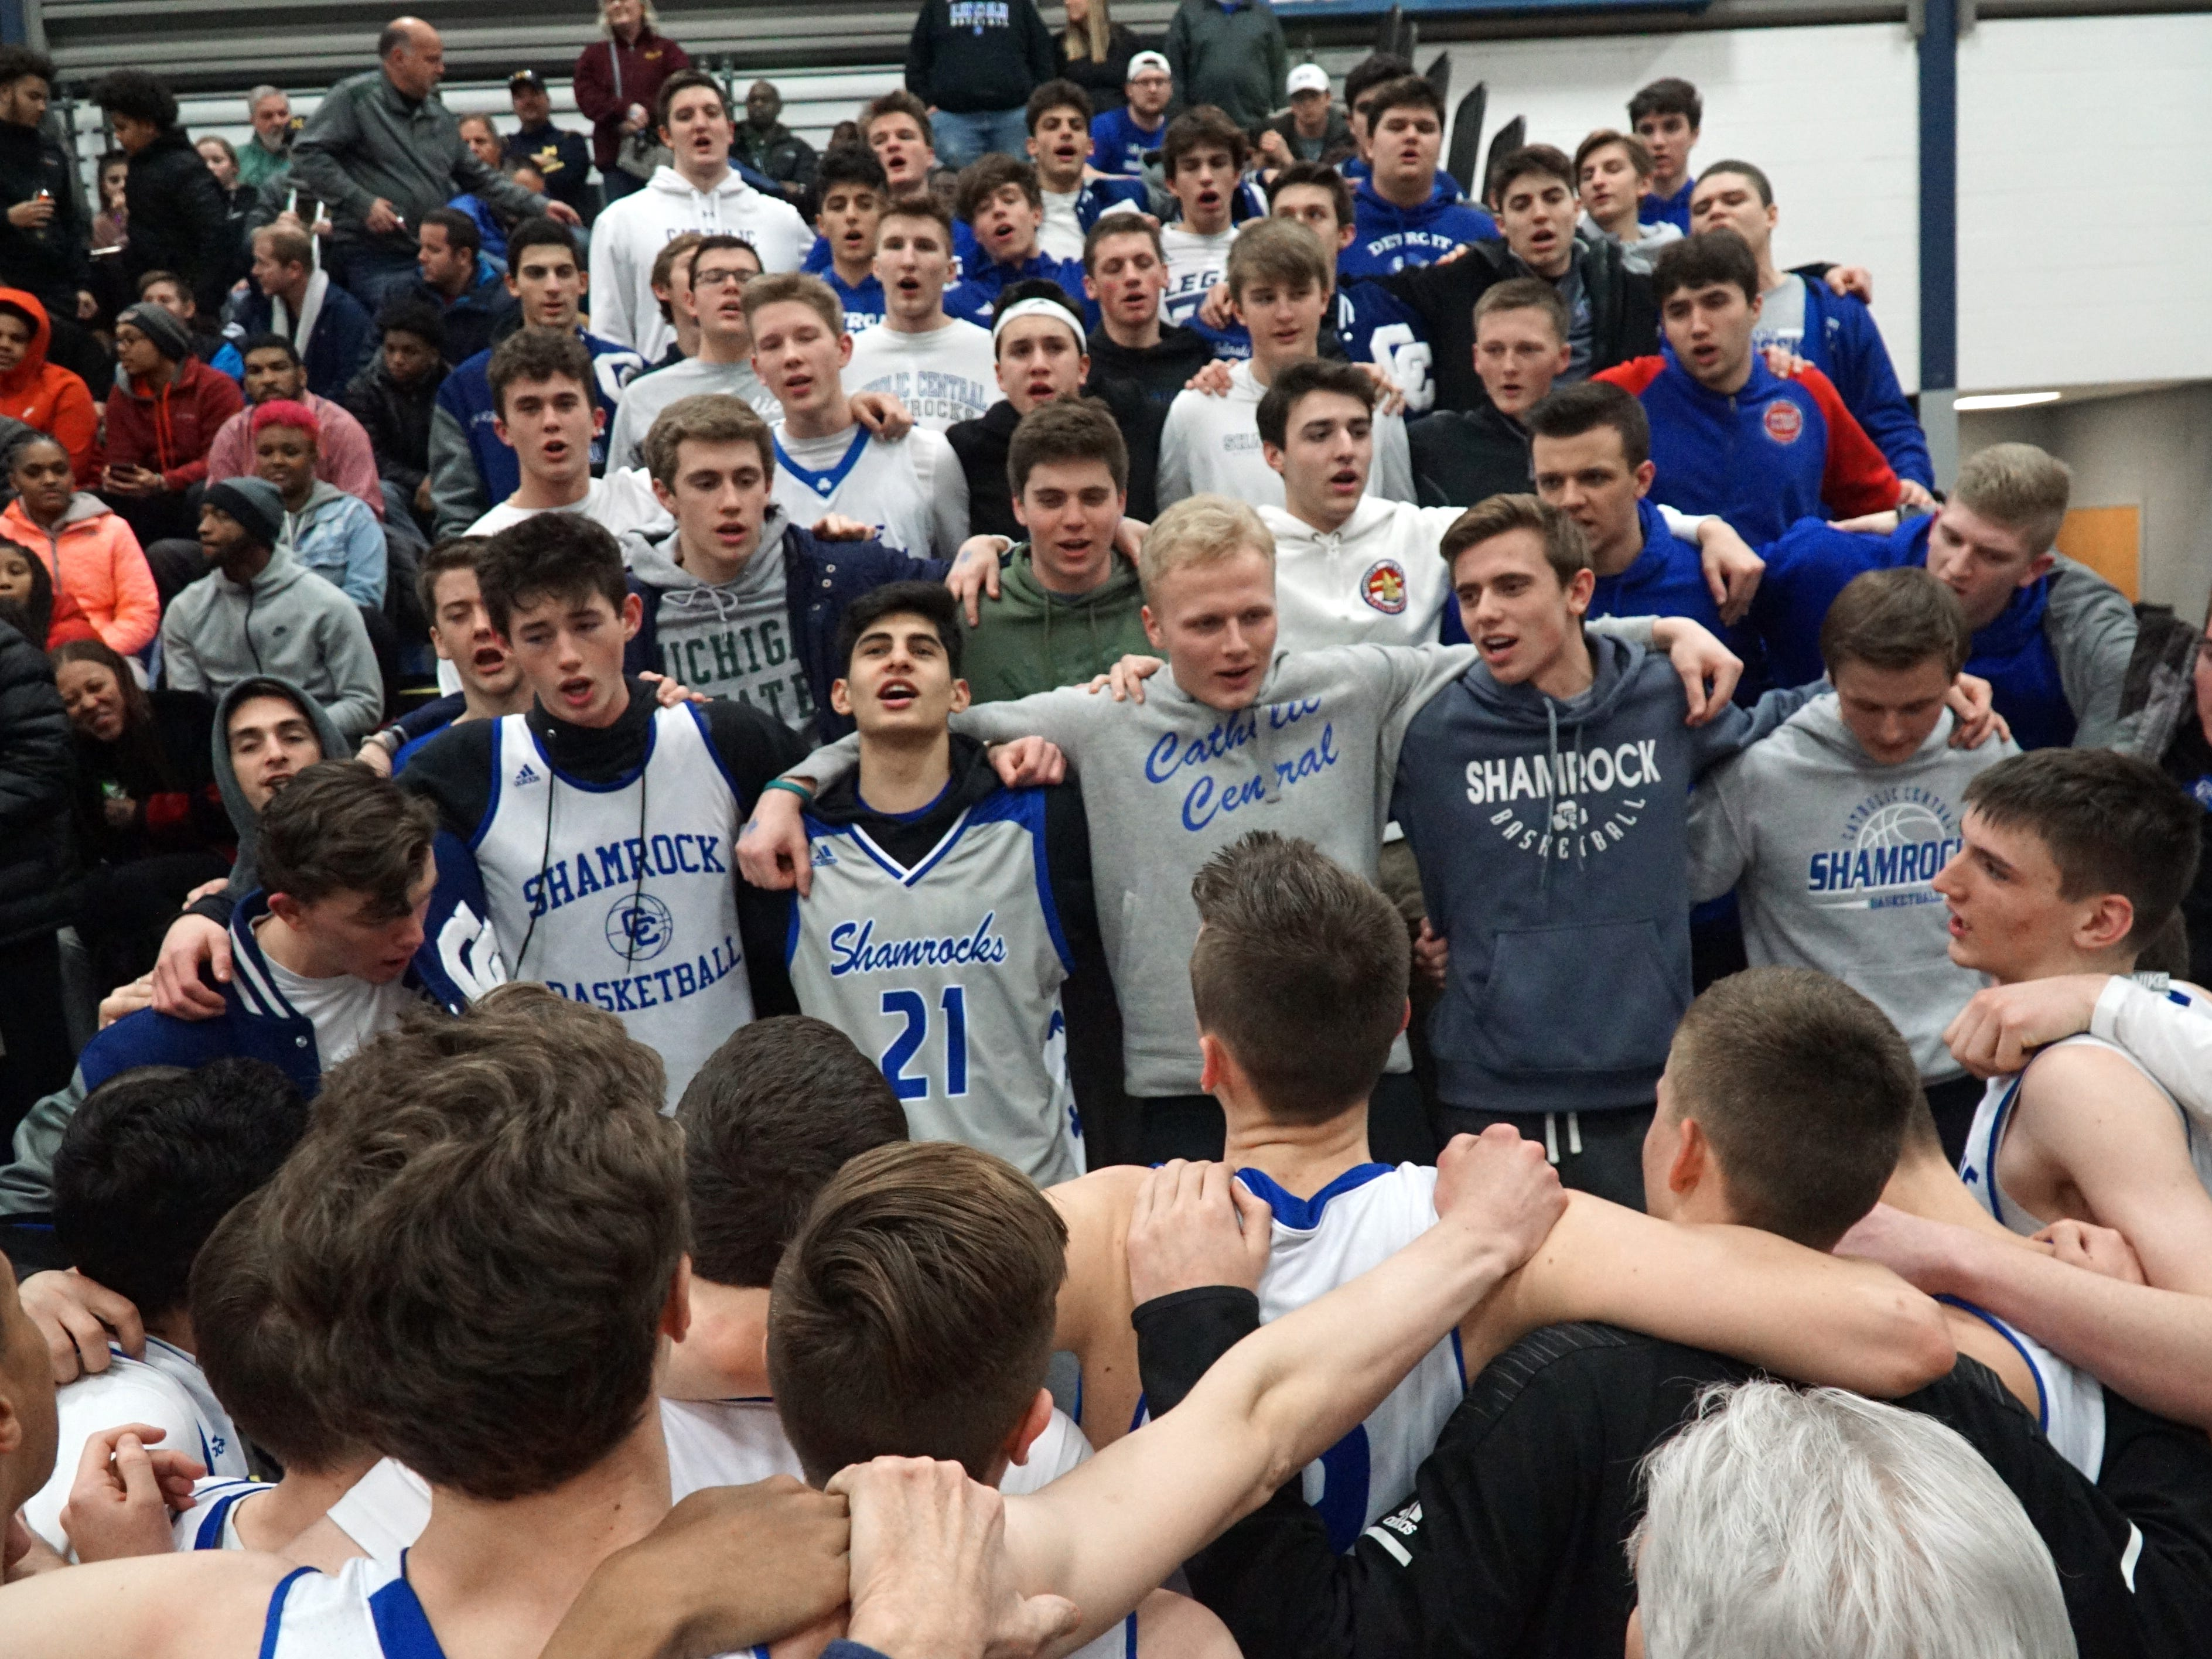 The CC basketball team sings Mary Alma Mater with their fans in the stands after their March 5 victory.